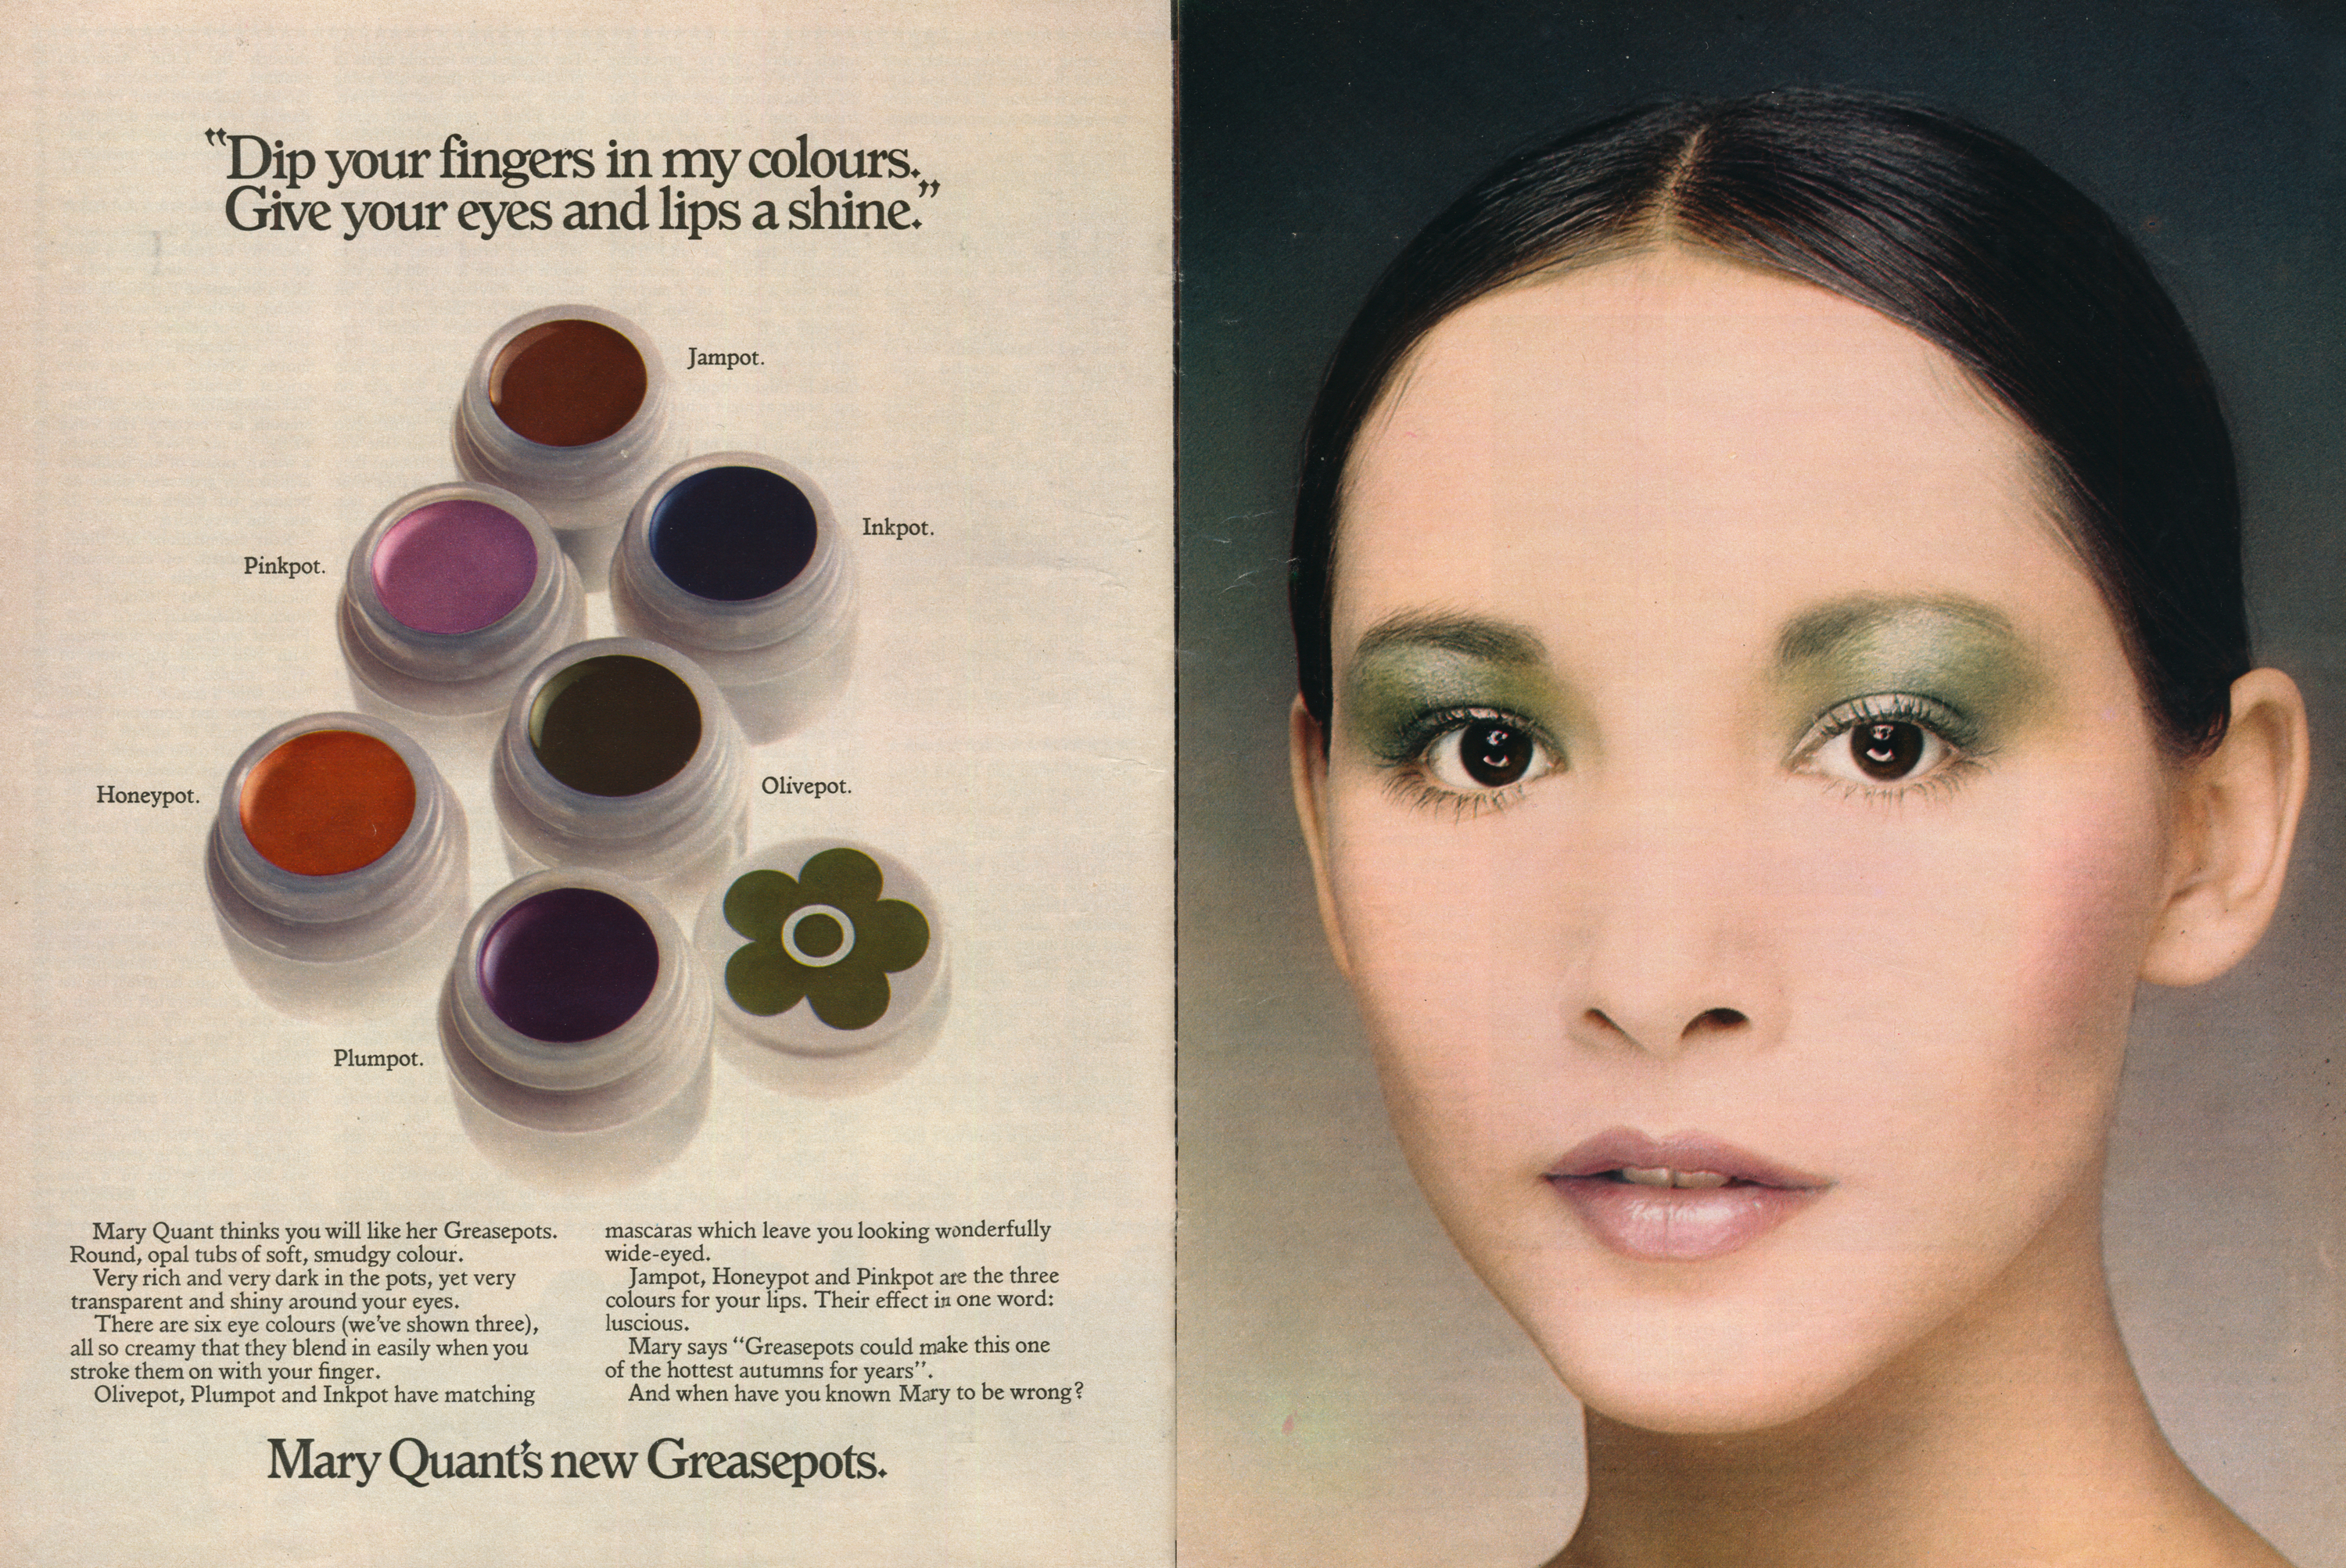 Advert for Mary Quant greasepot cosmetics.